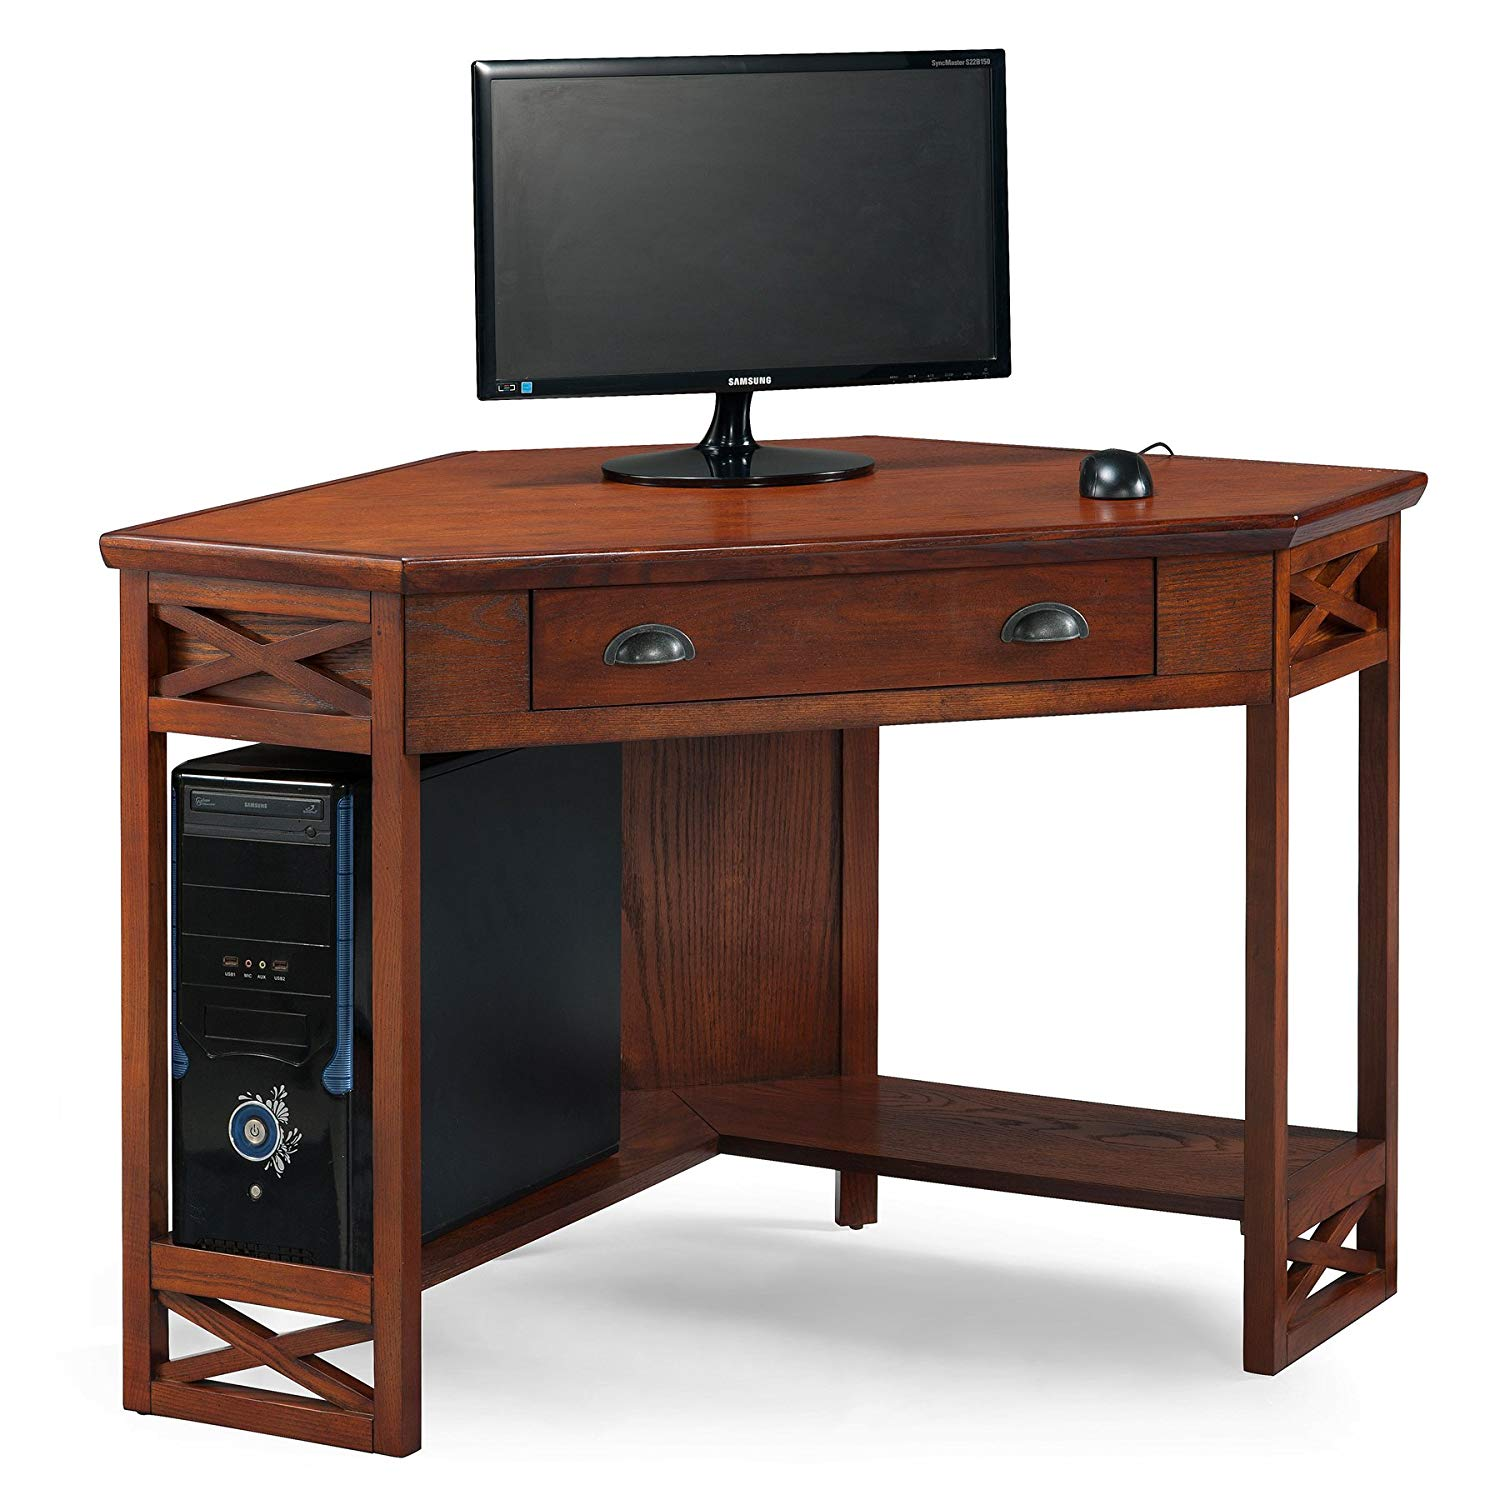 leick corner computer and writing desk oak finish accent table kitchen dining hampton bay posada sage green nautical lighting fixtures target changing large side kid runner high